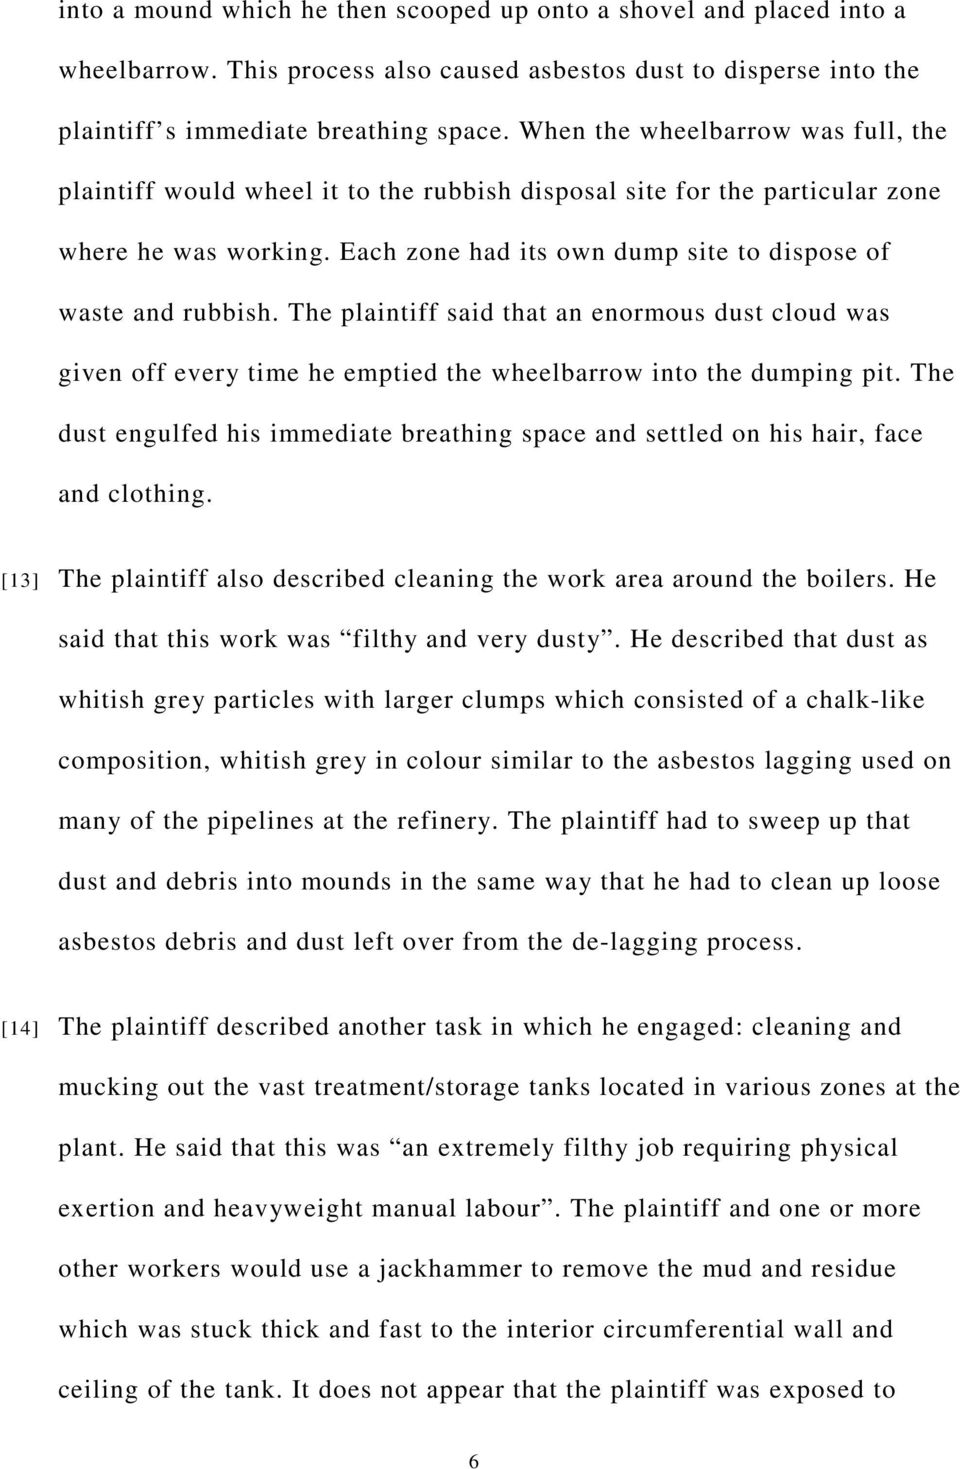 The plaintiff said that an enormous dust cloud was given off every time he emptied the wheelbarrow into the dumping pit.